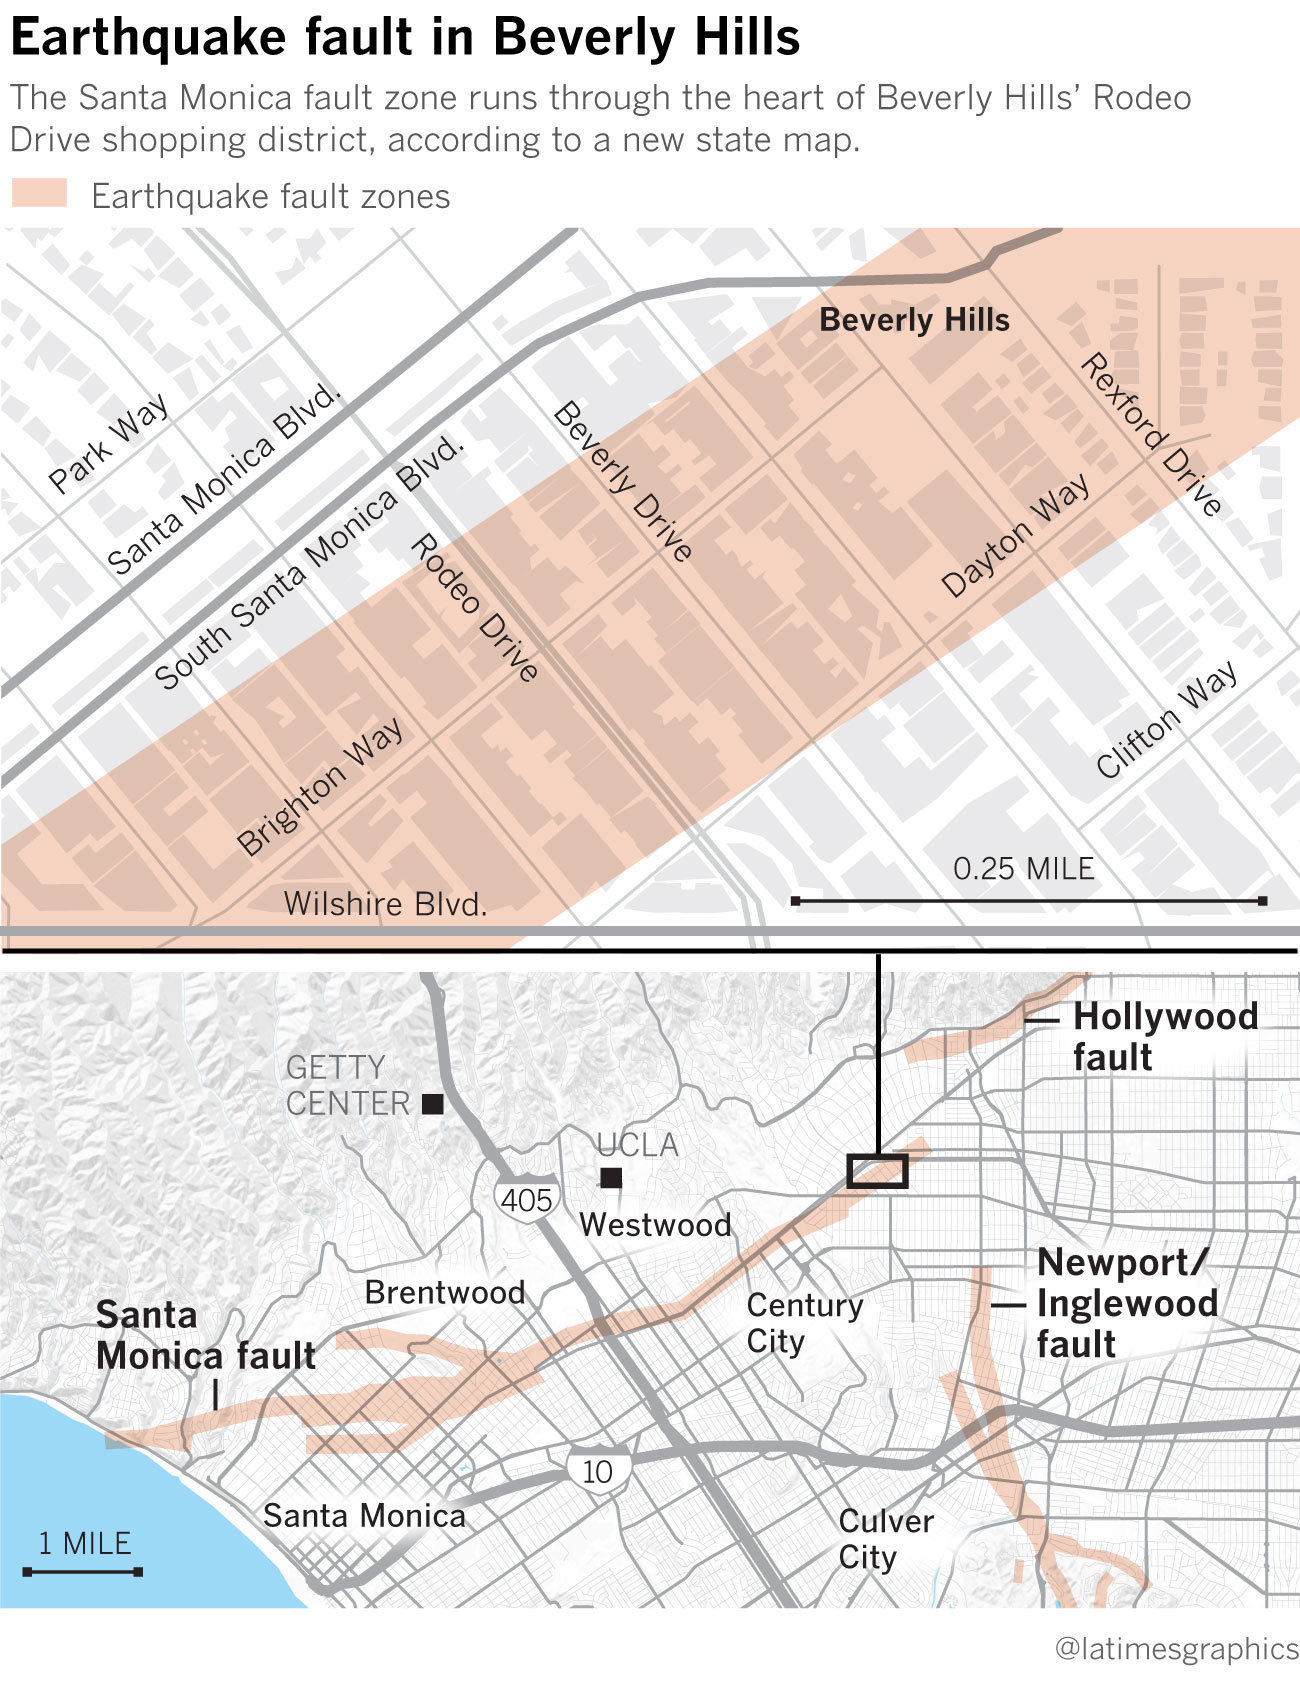 Earthquake Fault Runs Through Rodeo Drive And Beverly